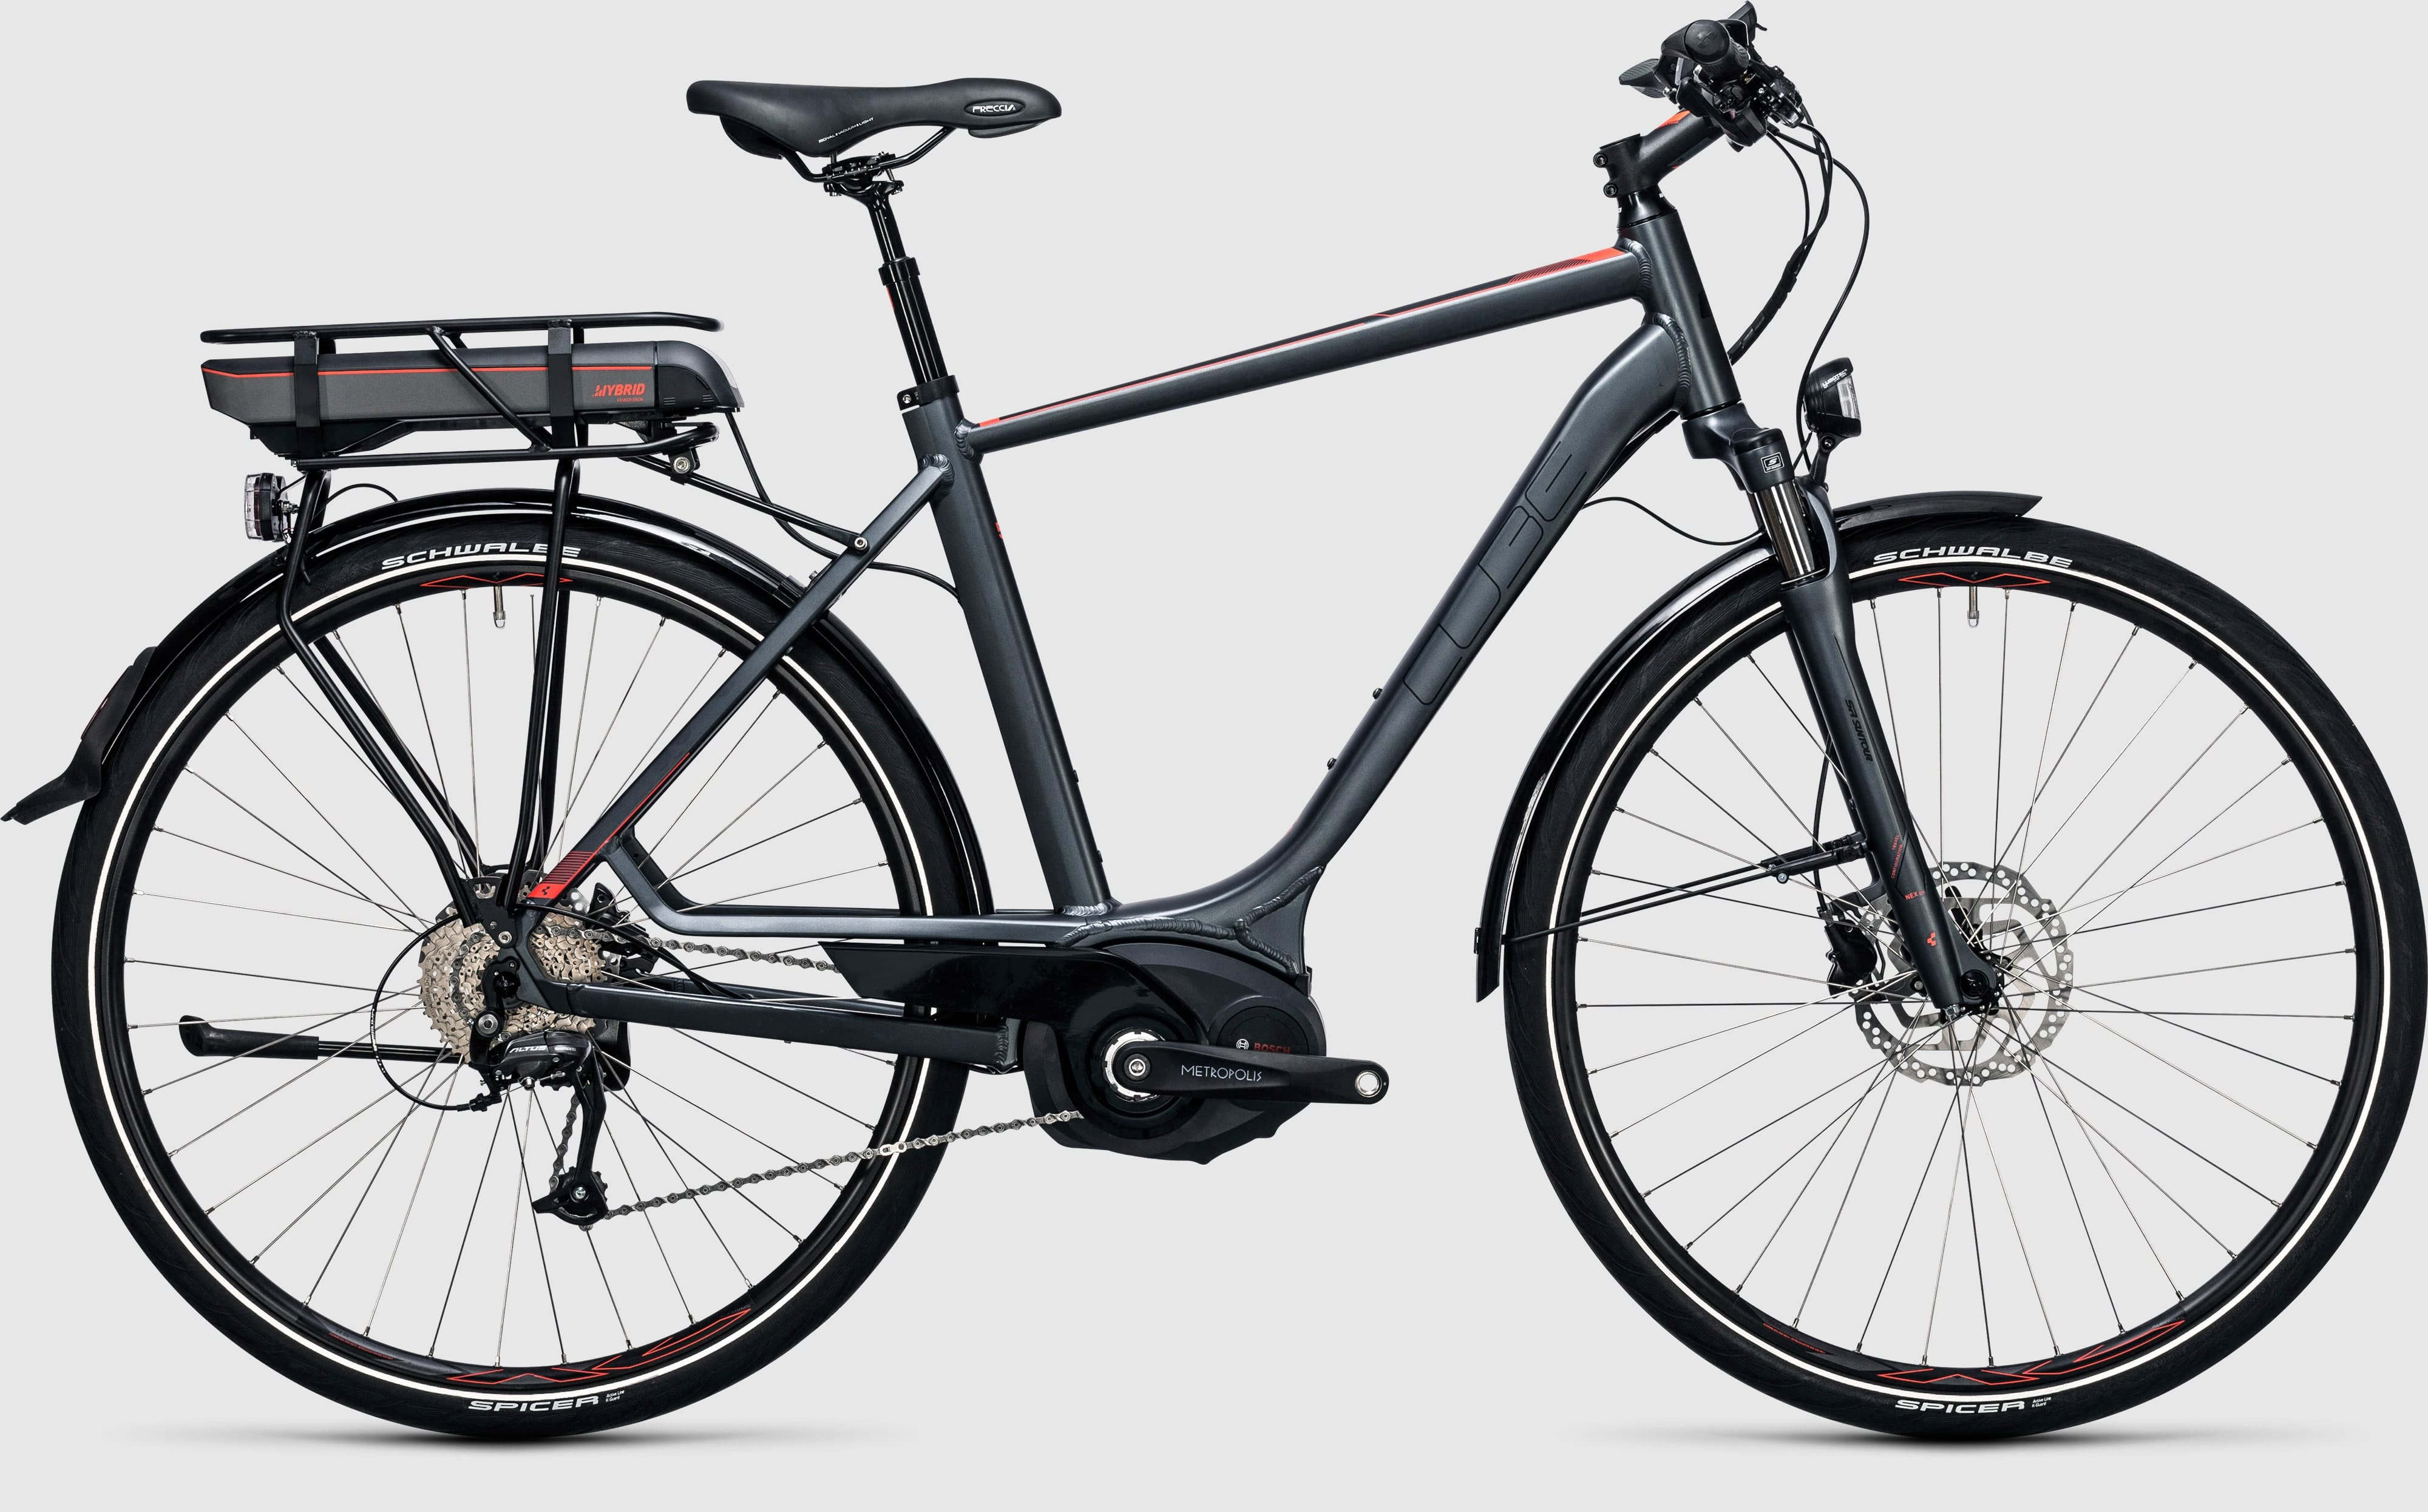 Cube Touring Hybrid Pro 500 E Bike 2017 All Terrain Cycles